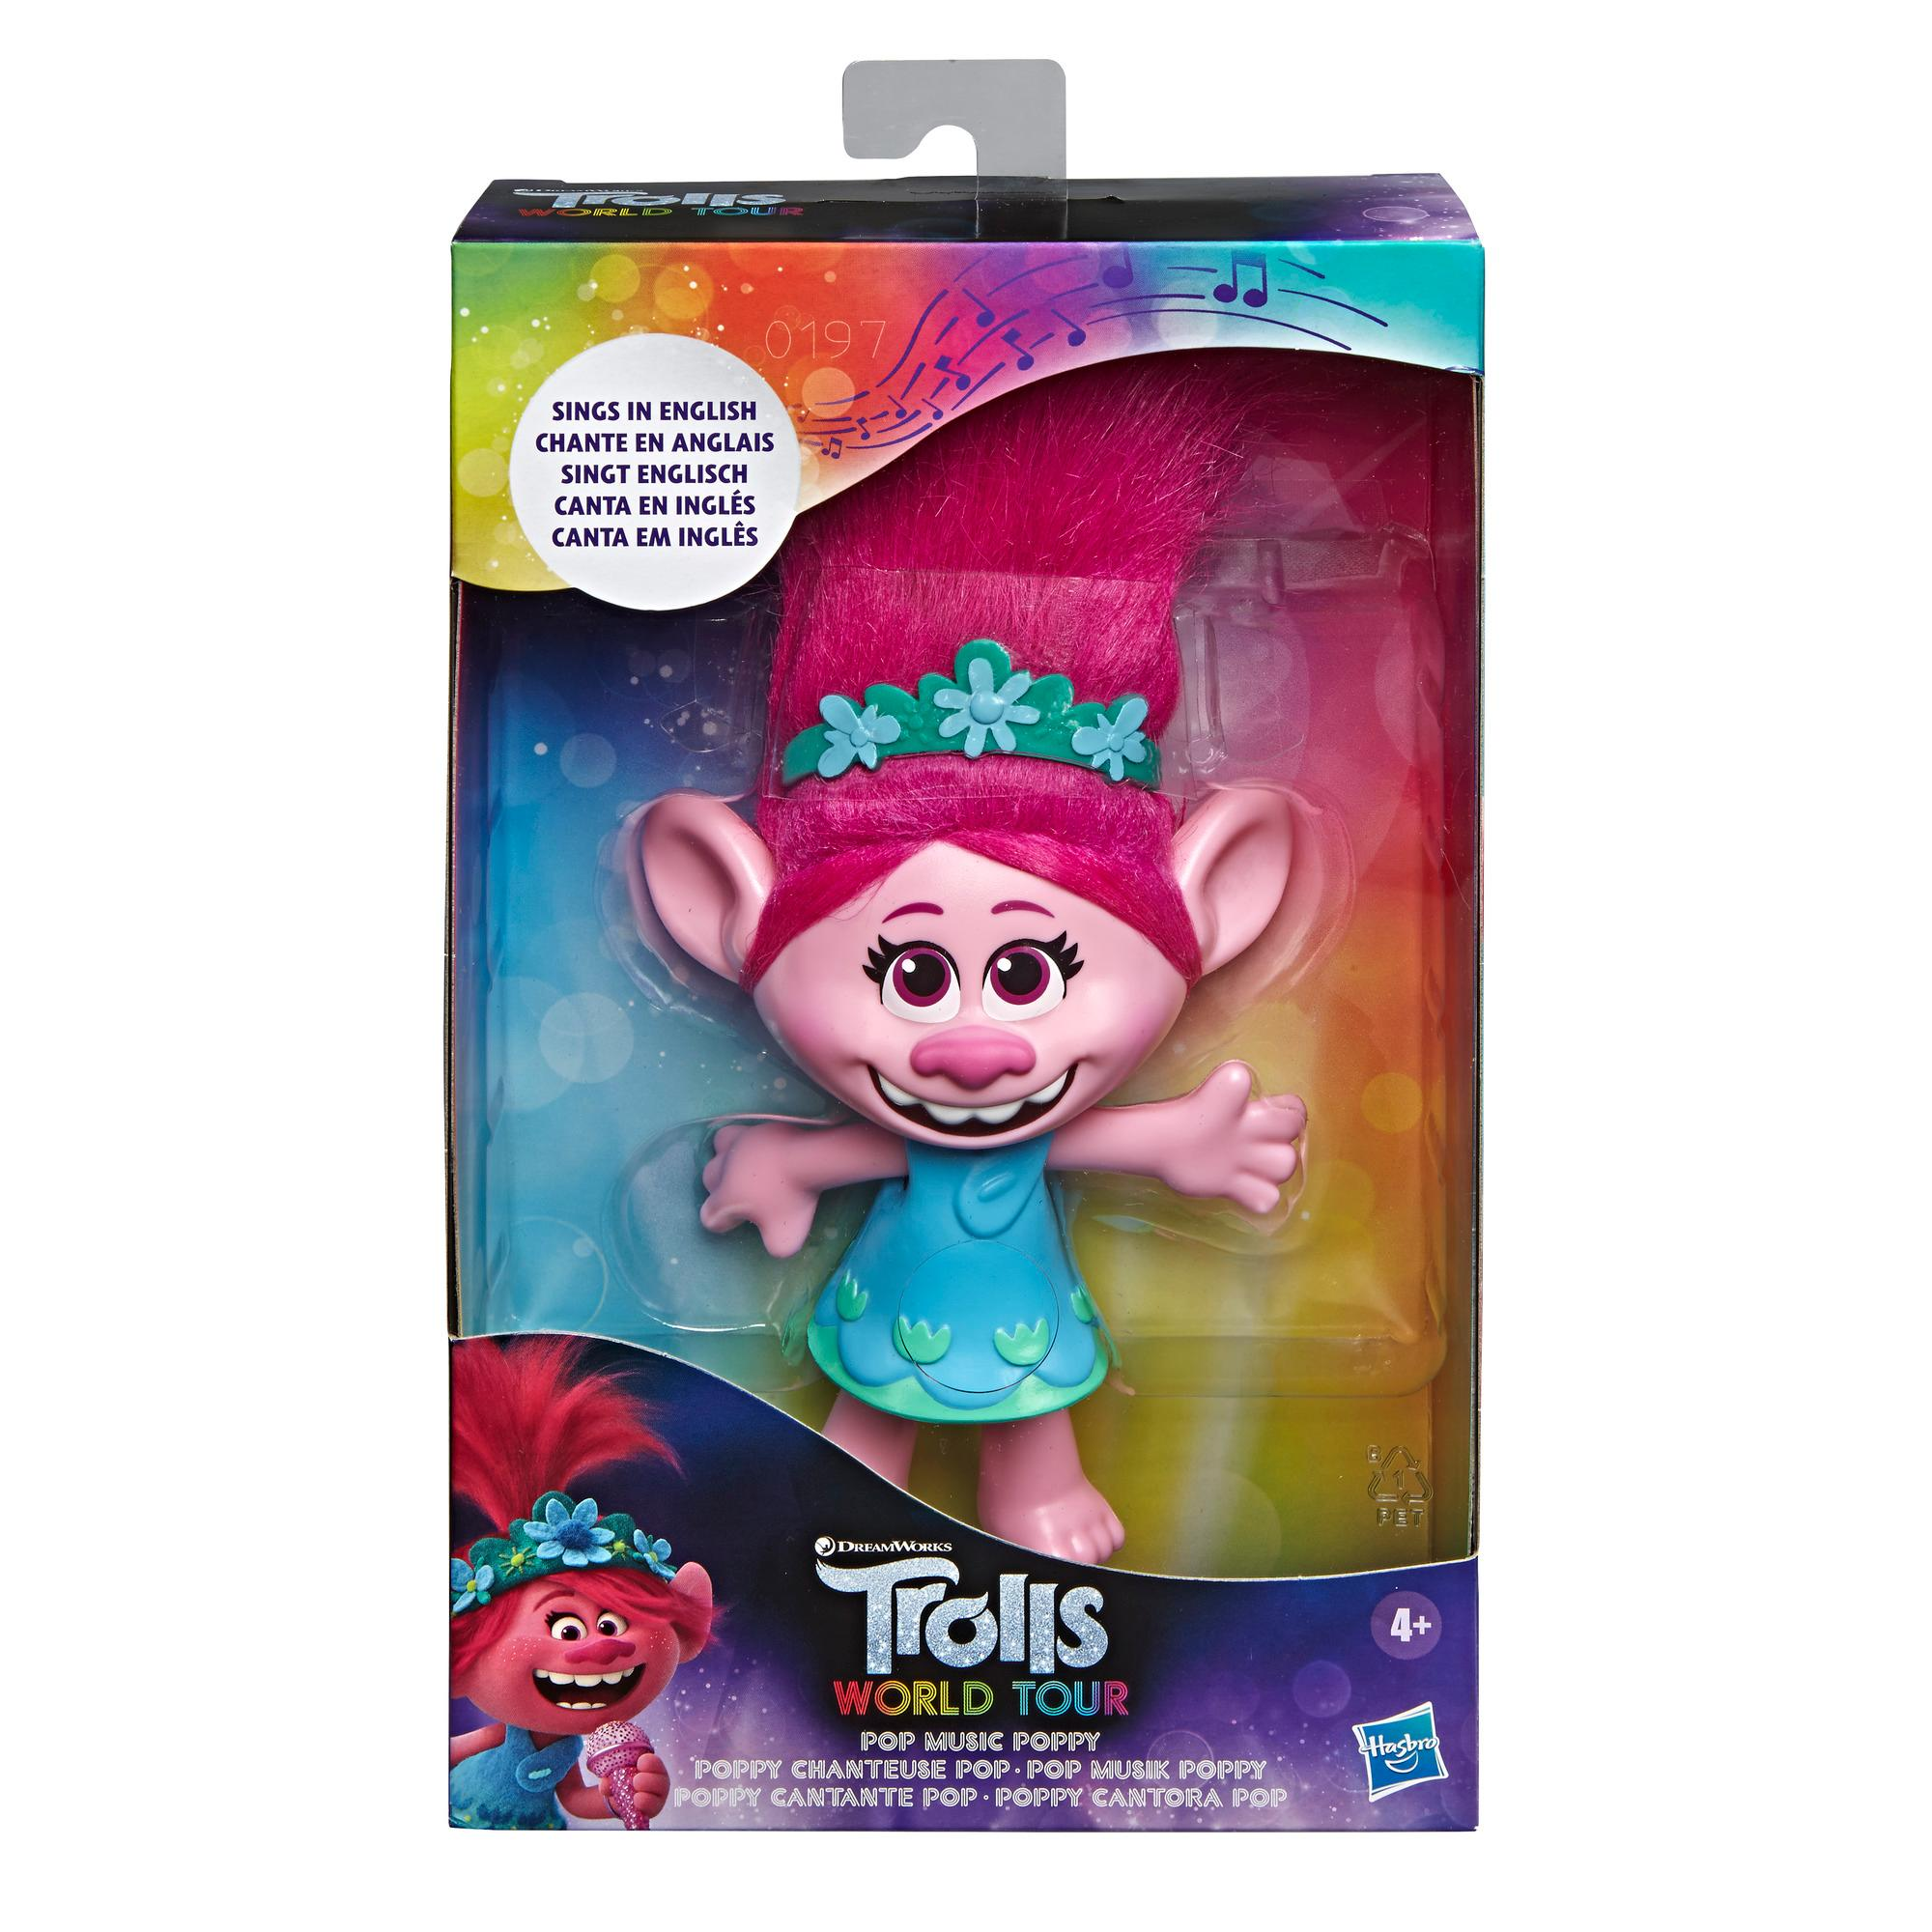 DreamWorks Trolls - Poppy Cantante pop - Figura que canta Trolls Just Want to Have Fun de la película Trolls: World Tour de DreamWorks